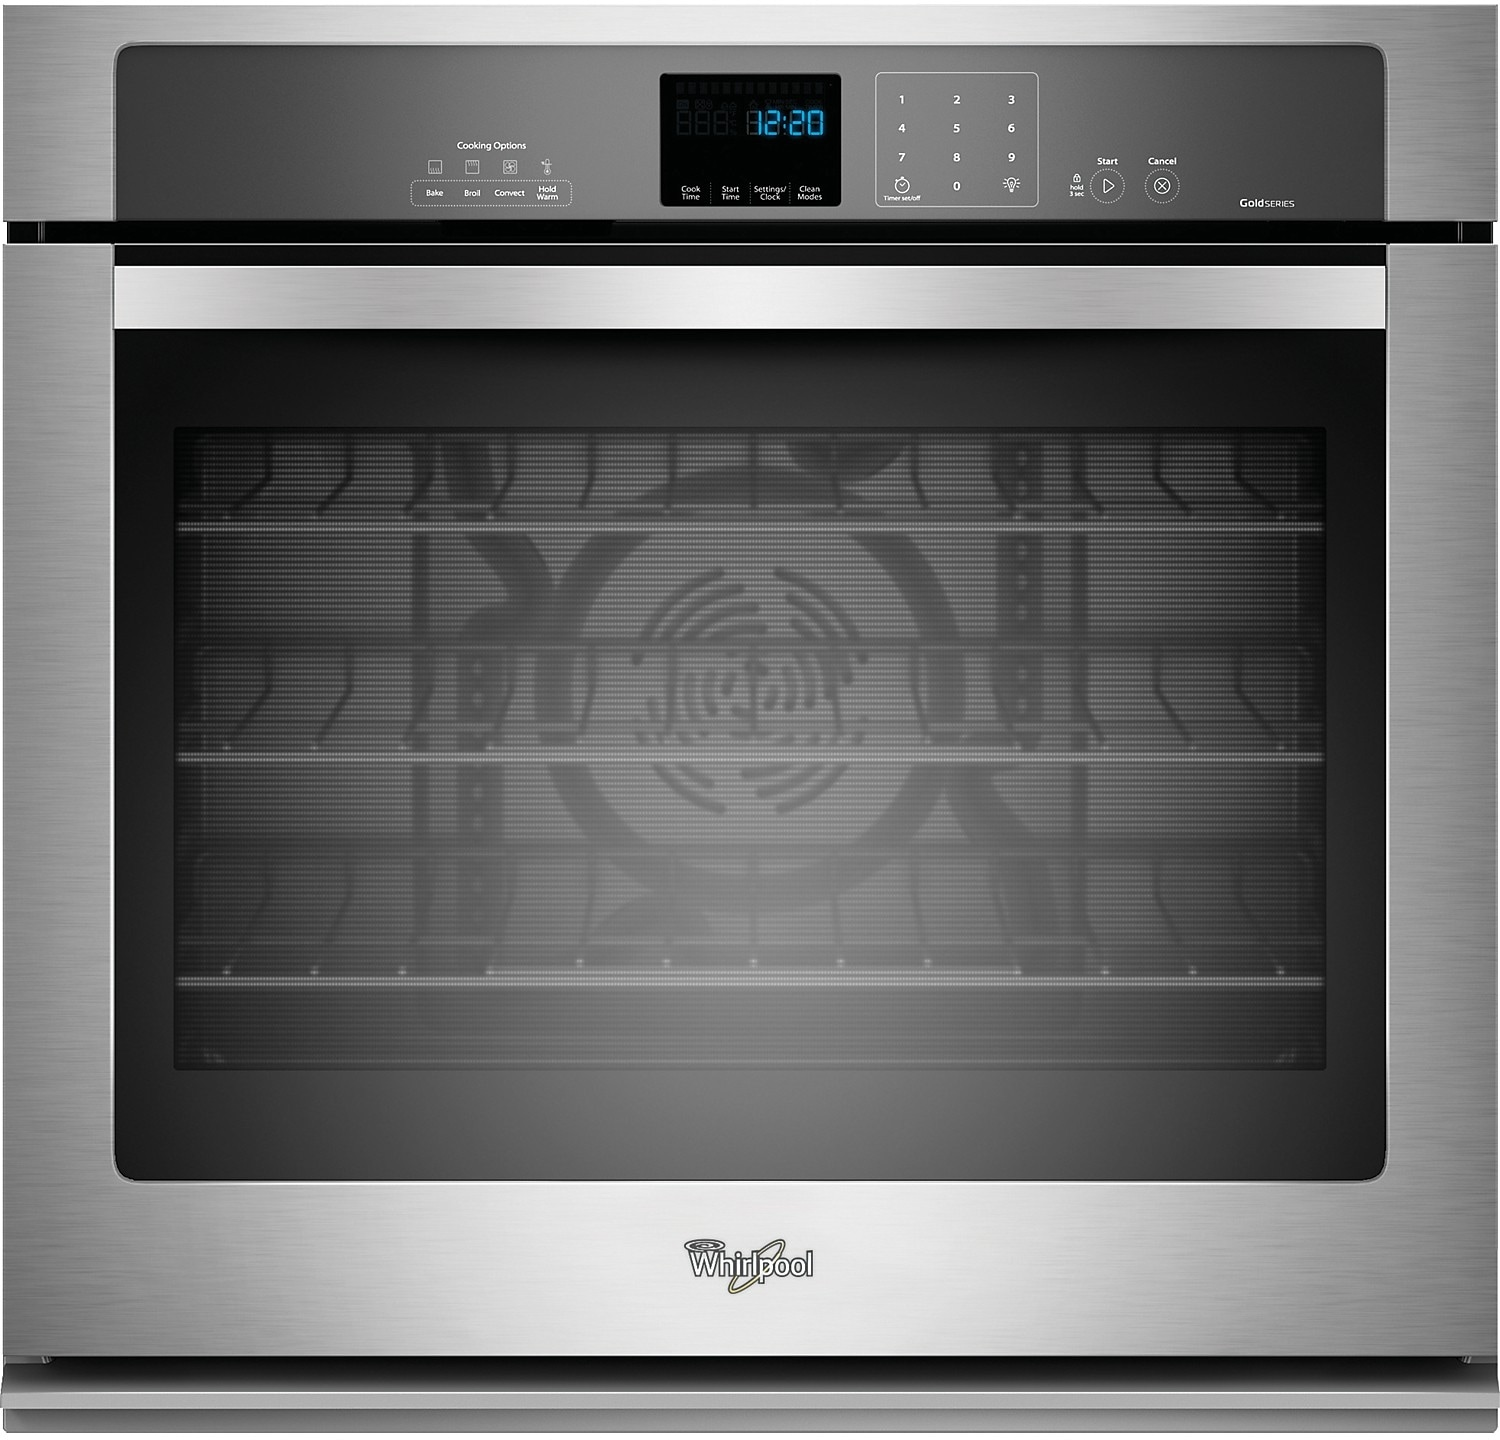 Whirlpool Gold® 5.0 Cu. Ft. Single Wall Oven – Stainless Steel